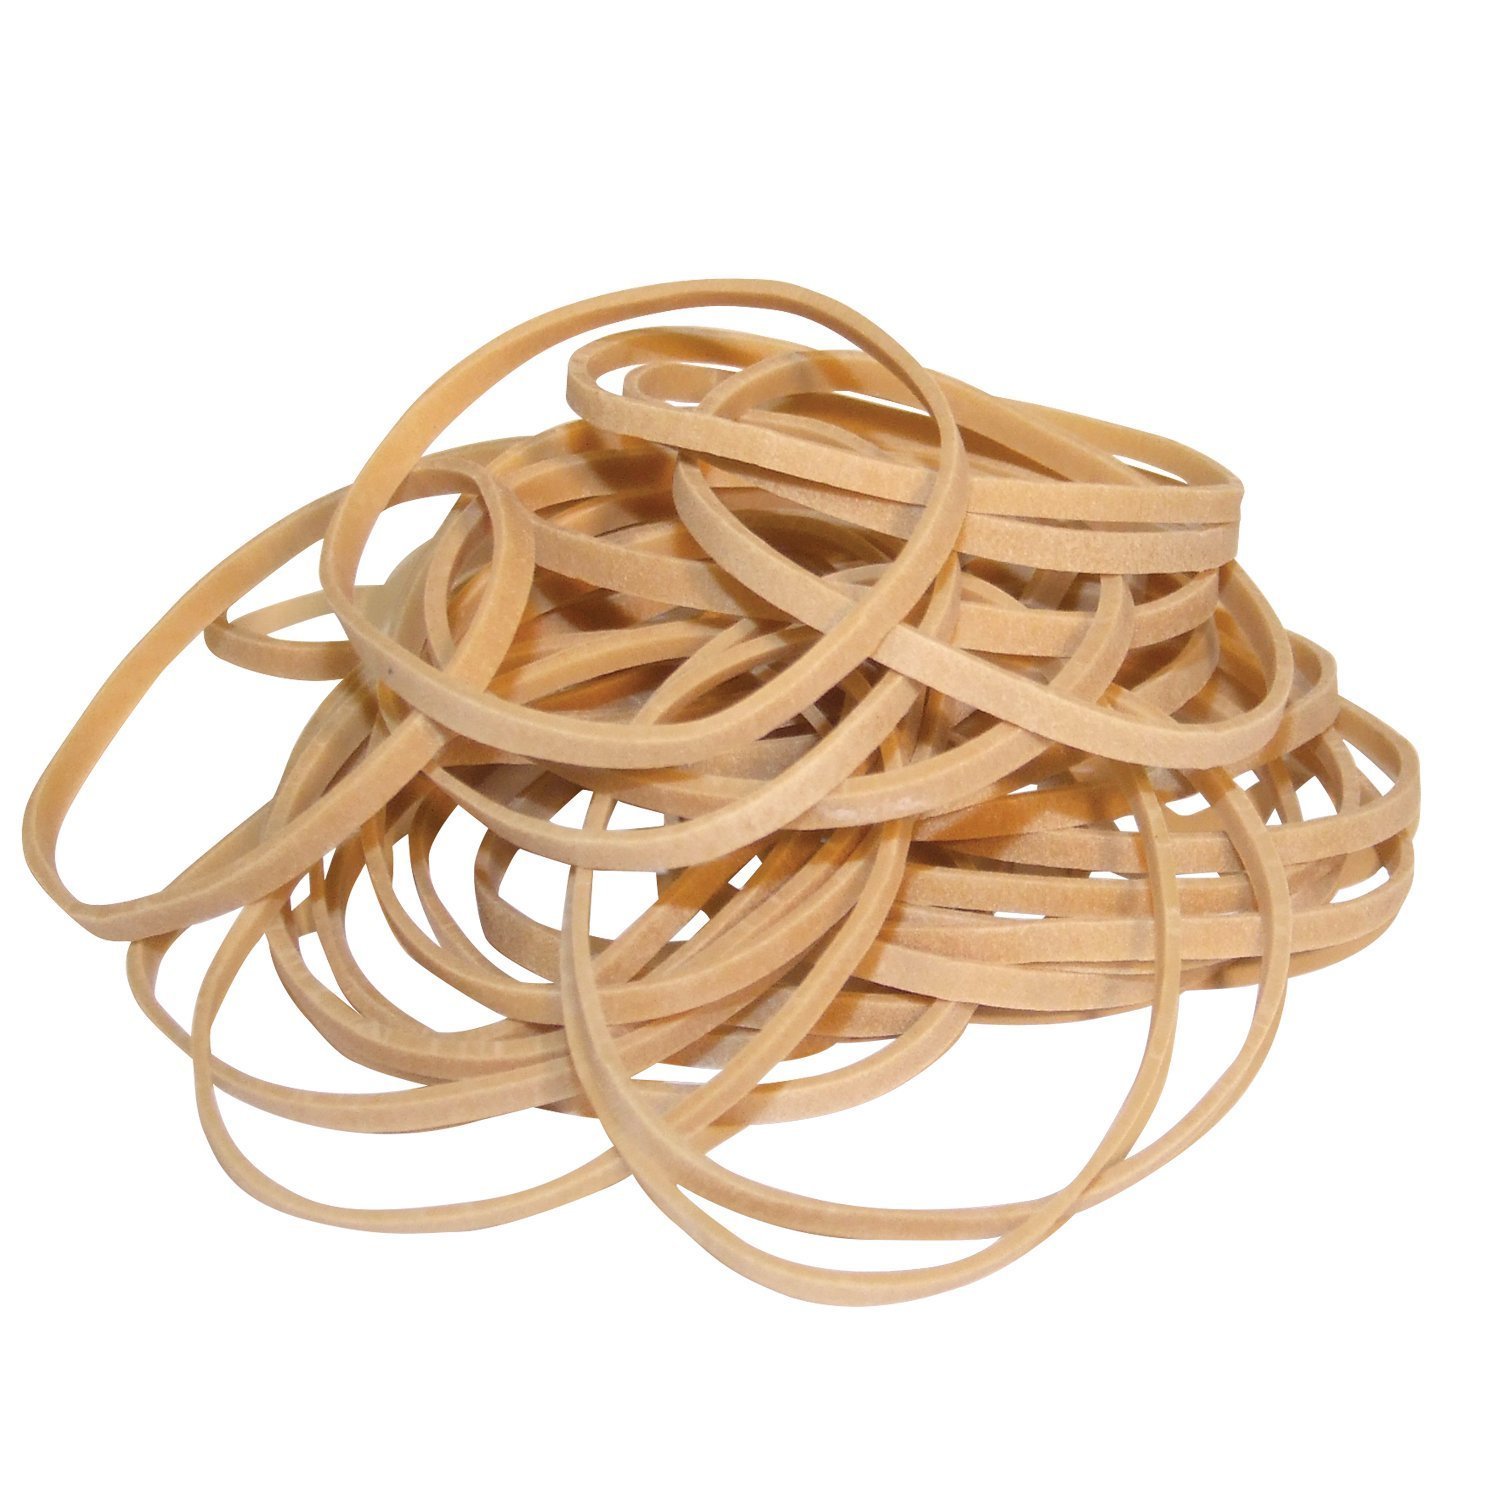 Rubber Bands ValueX Rubber Bands No 14 Natural 454g